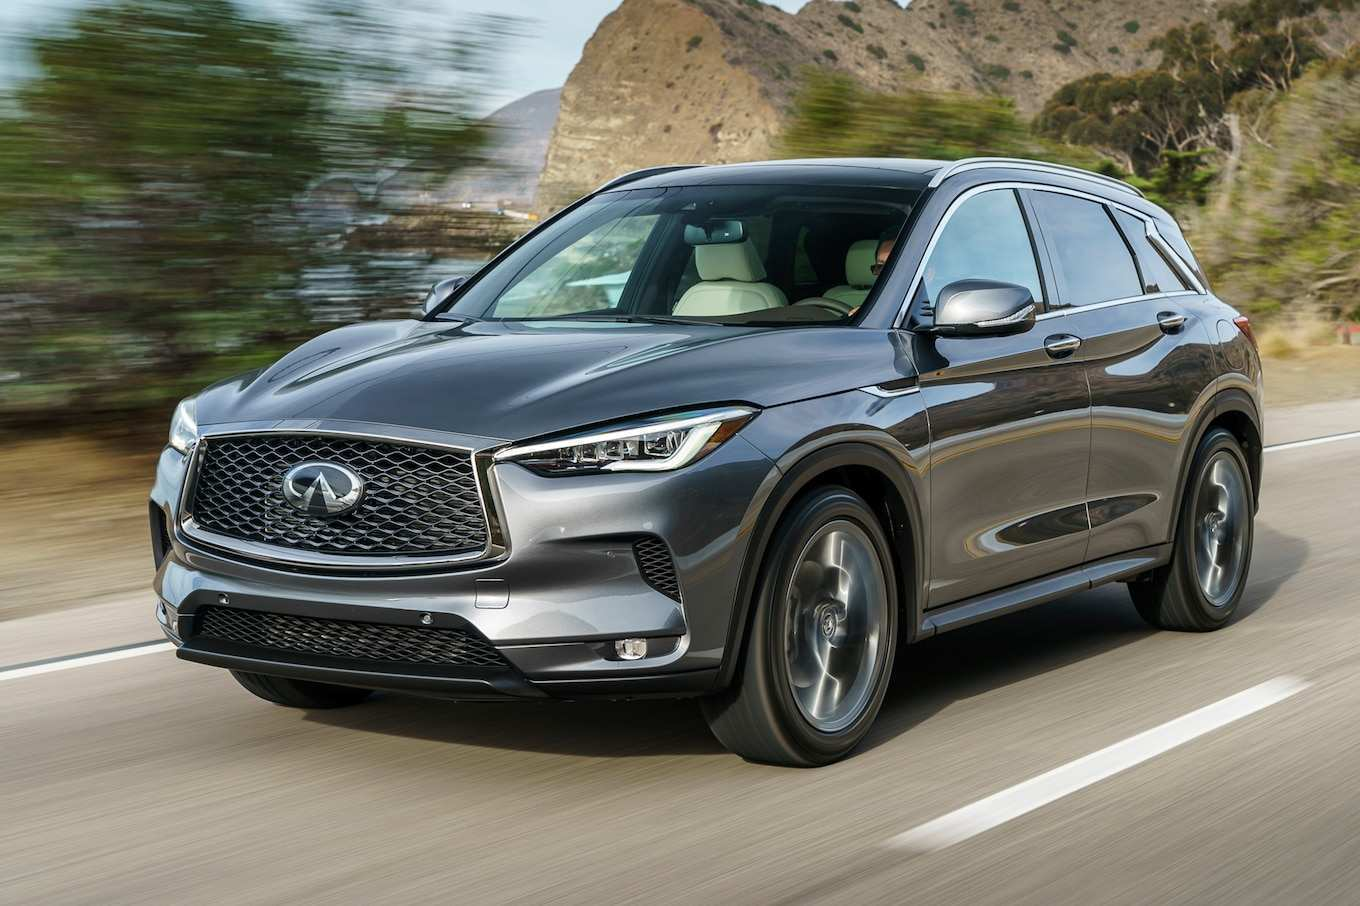 26 Best Review 2019 Infiniti Release Date Concept for 2019 Infiniti Release Date